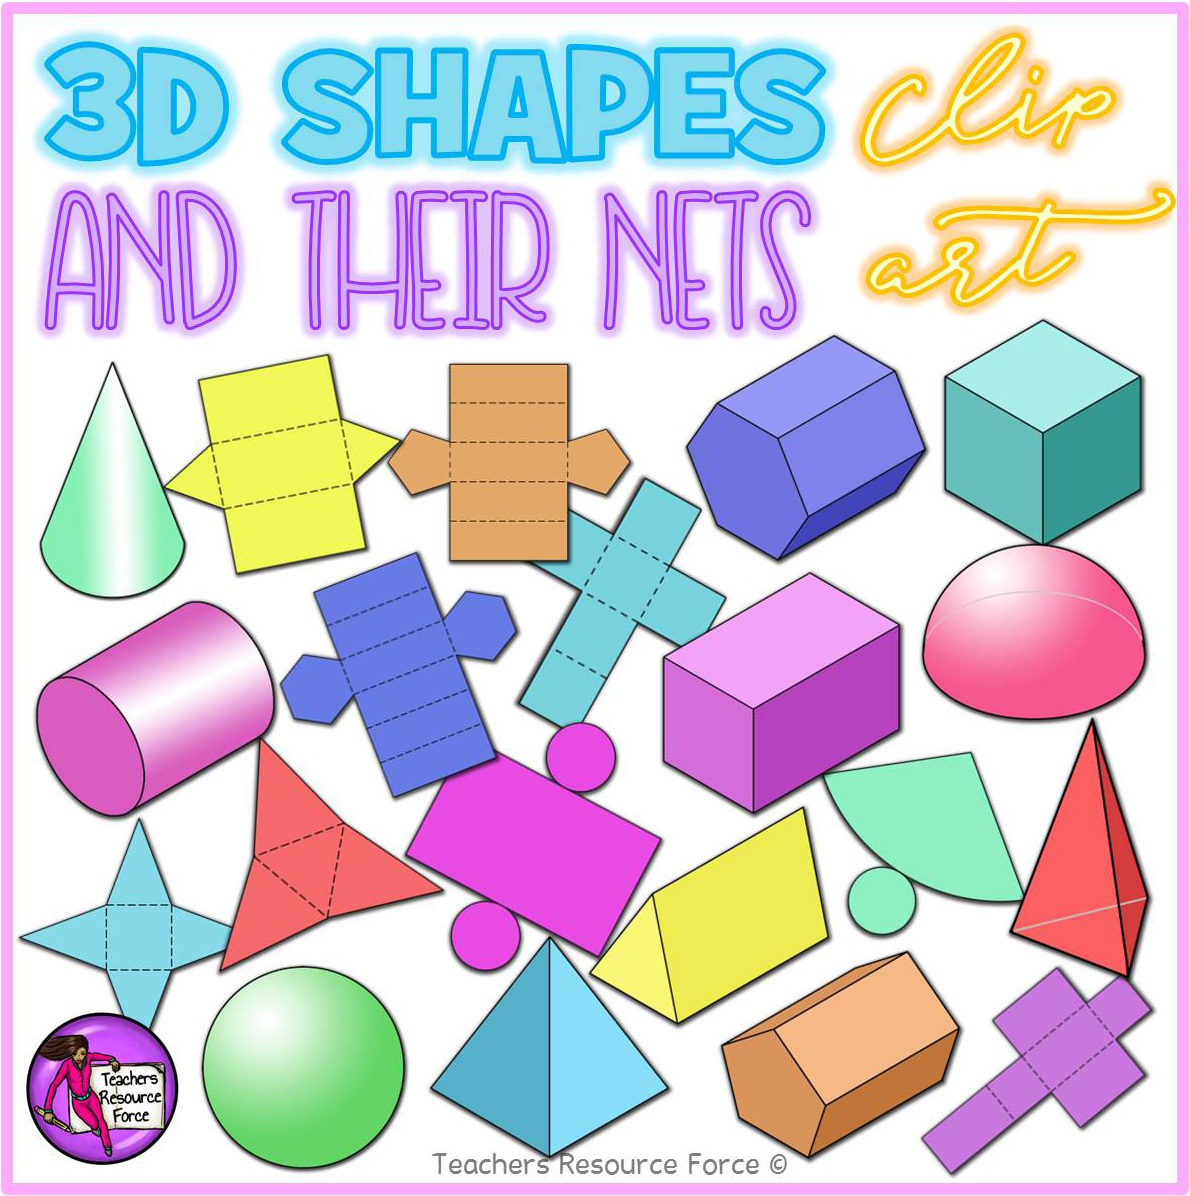 3d Shapes Amp Their Nets Clip Art